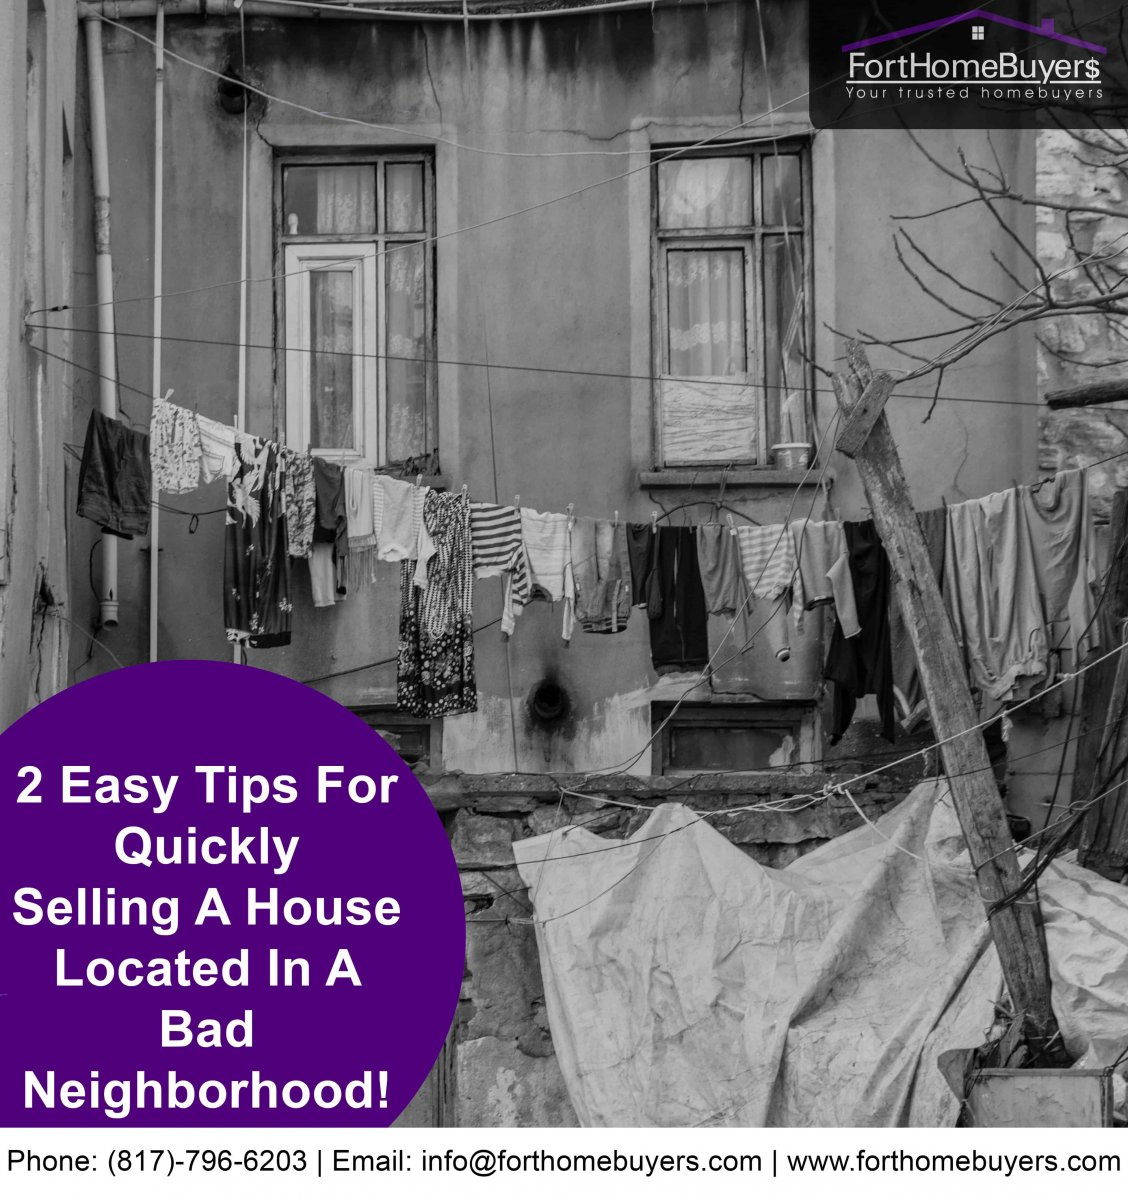 Easy Tips For Quickly Selling A House